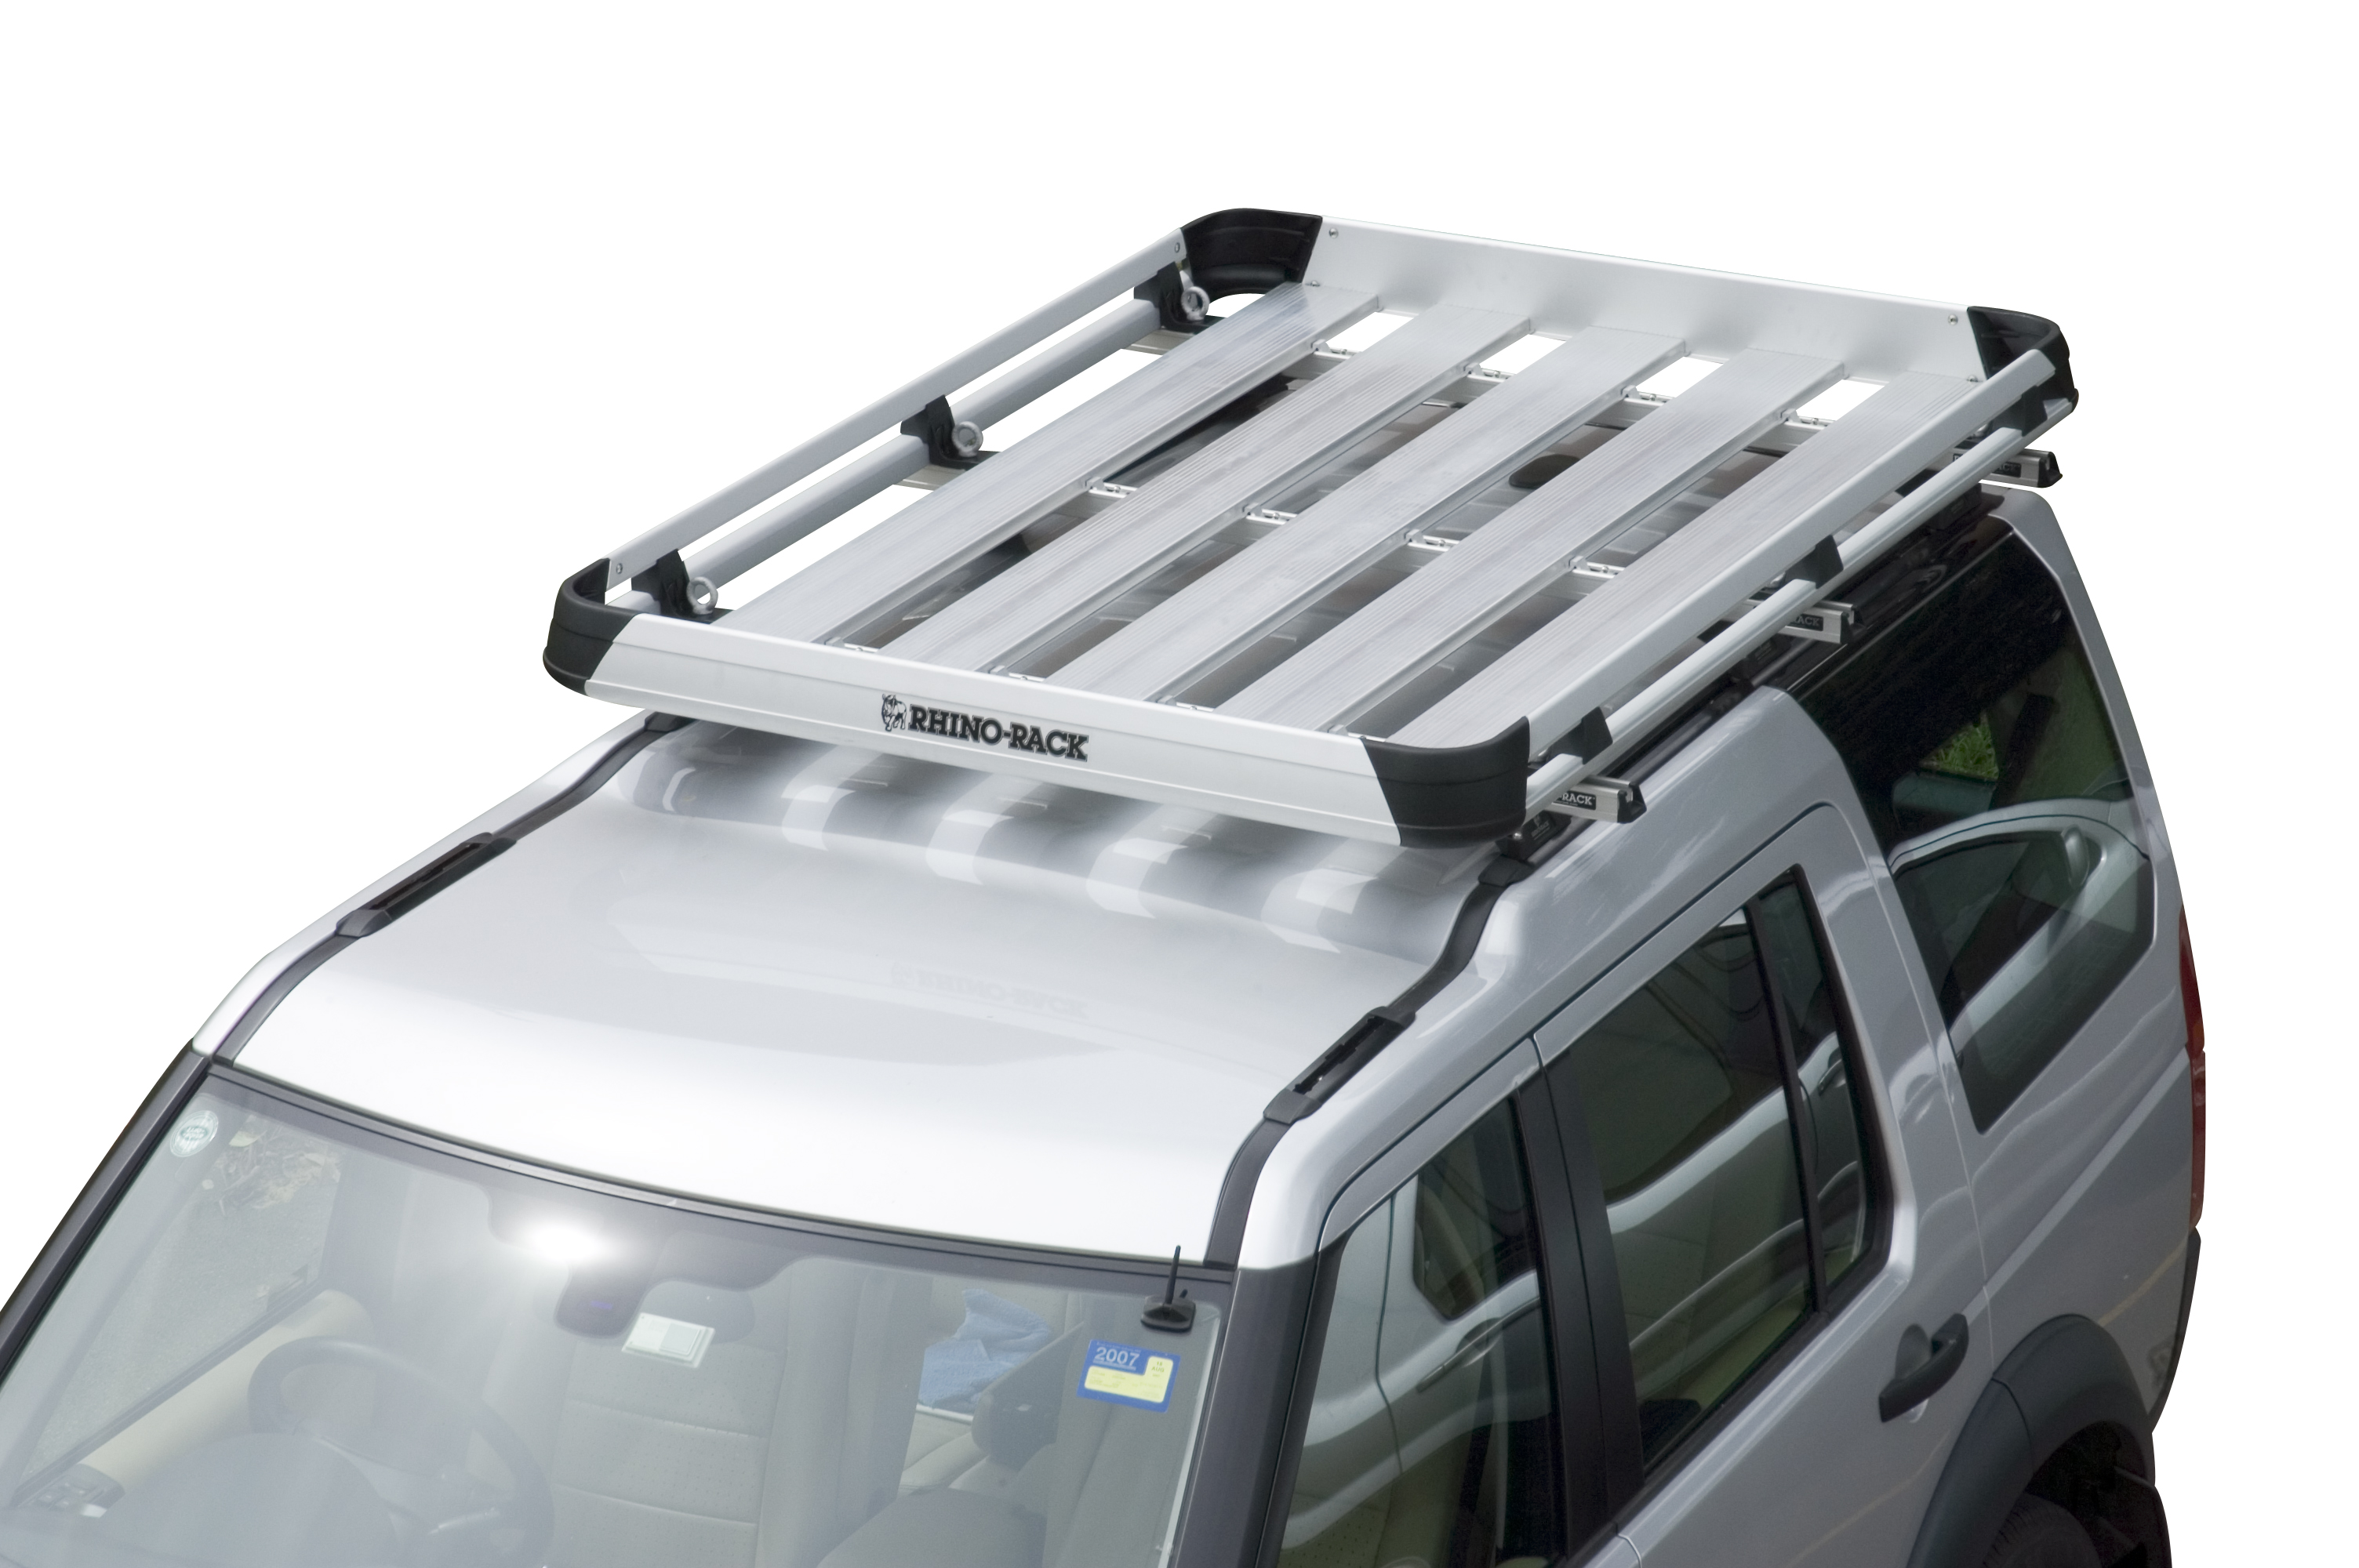 suv top back rack luggage car go roof for of carrier bag waterproof walmart basket cargo